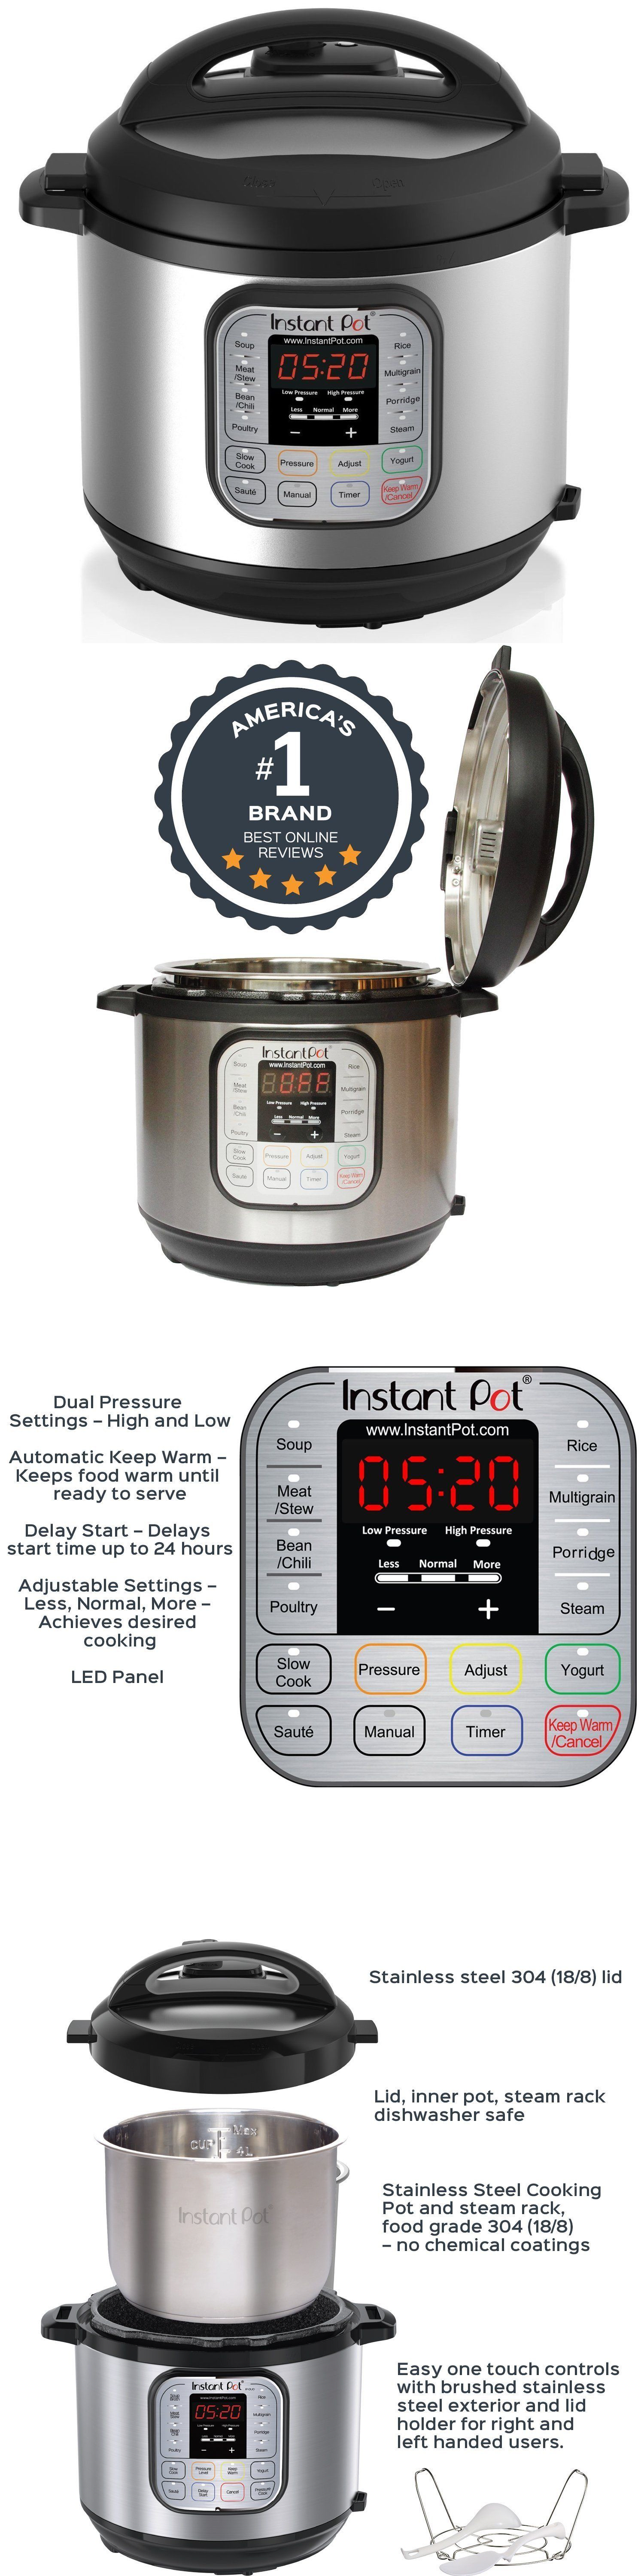 Small kitchen appliances instant pot ipduo v programmable